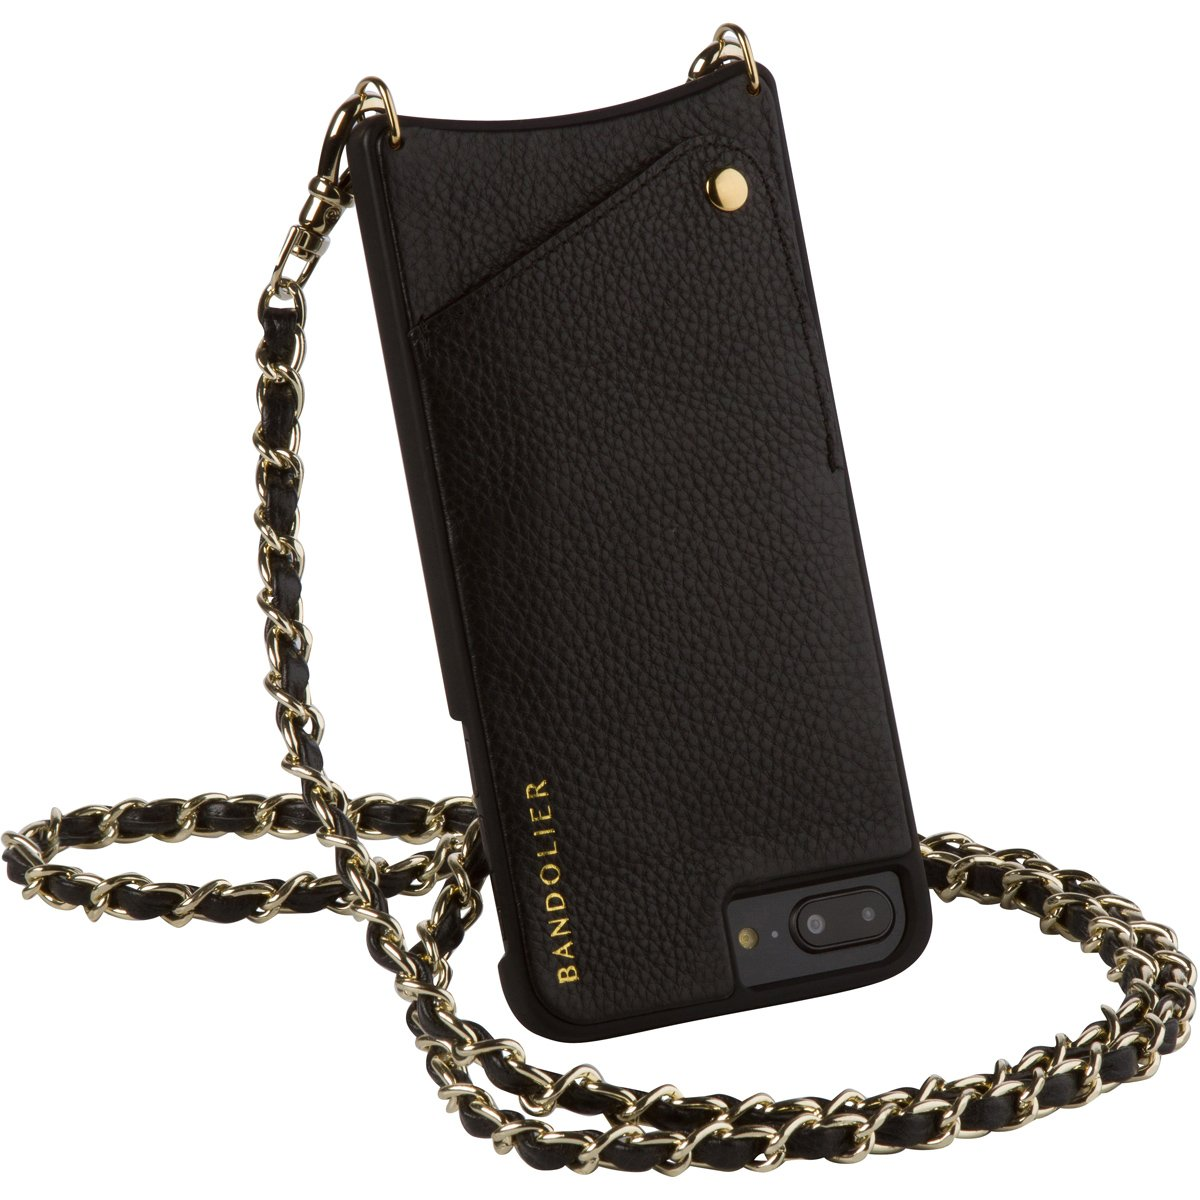 Bandolier [Lucy] Crossbody Phone Case and Wallet - Compatible with iPhone 8/7/6 - Black Leather with Gold Accent